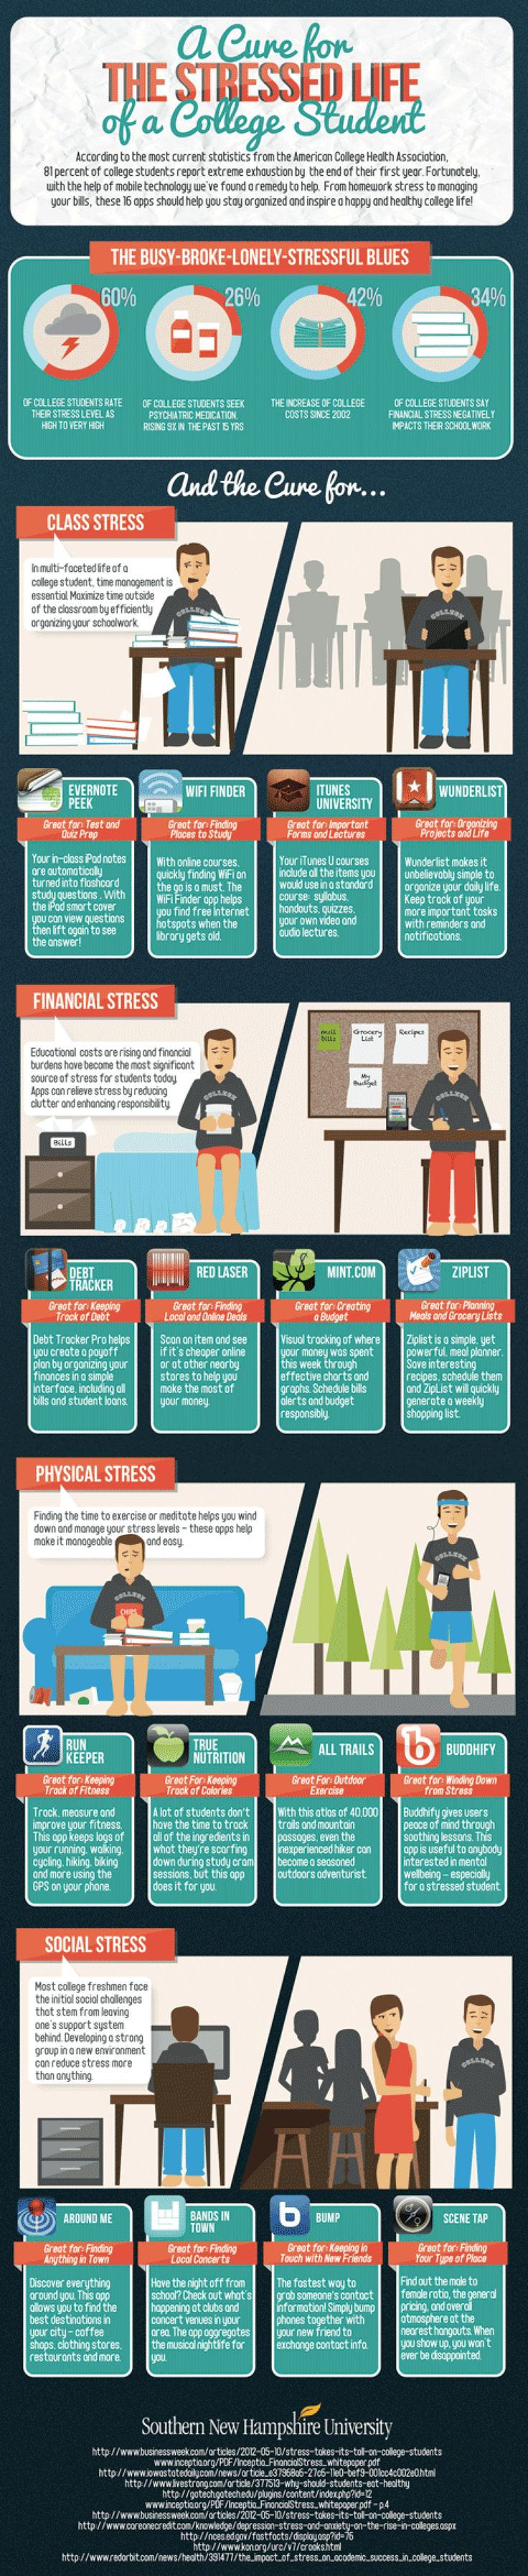 118 Best Images About Stayinganized: College Students & Graduates On  Pinterest  Professional Goals, School Jobs And Apps